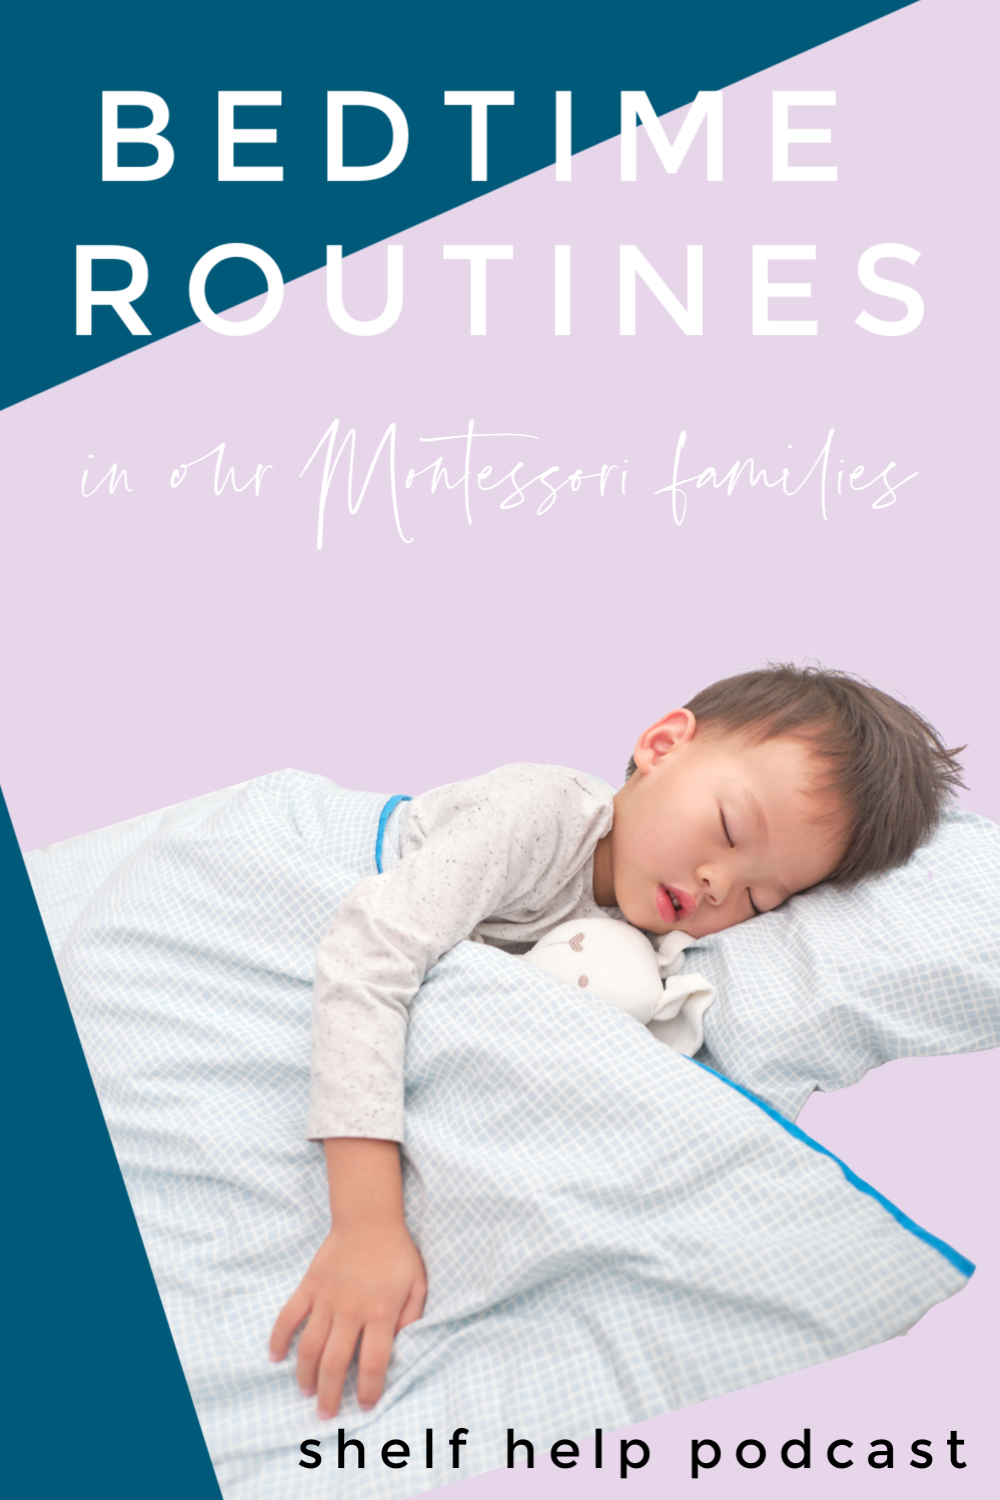 In this parenting advice podcast, we address bedtimes and sleep in our Montessori families. These tips help balance independence and our sleep needs.